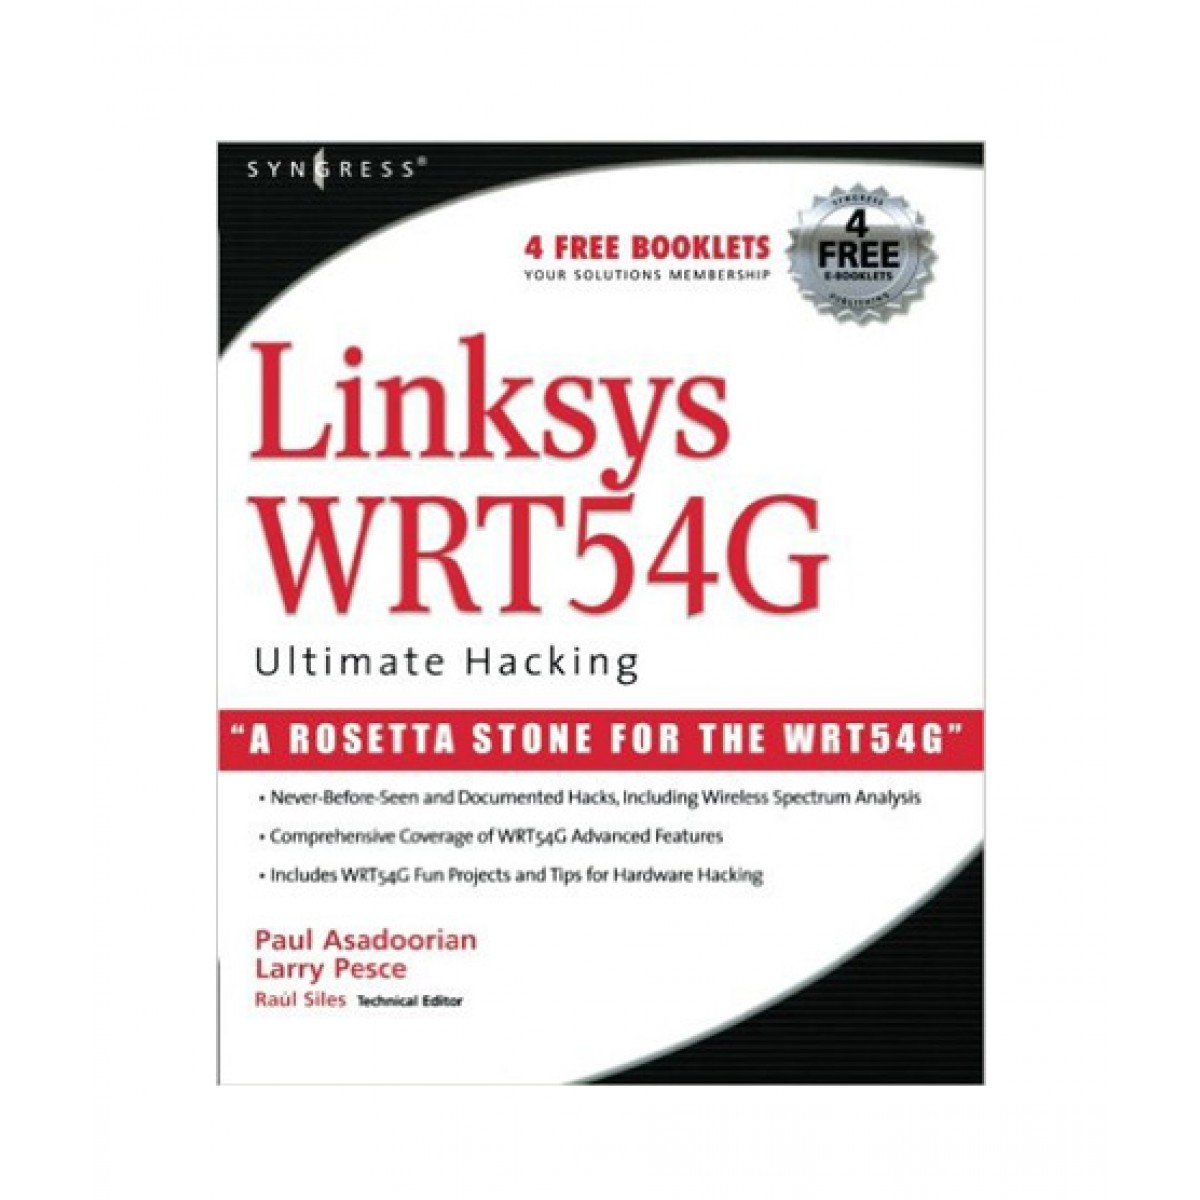 Linksys WRT54G Ultimate Hacking Book 1st Edition